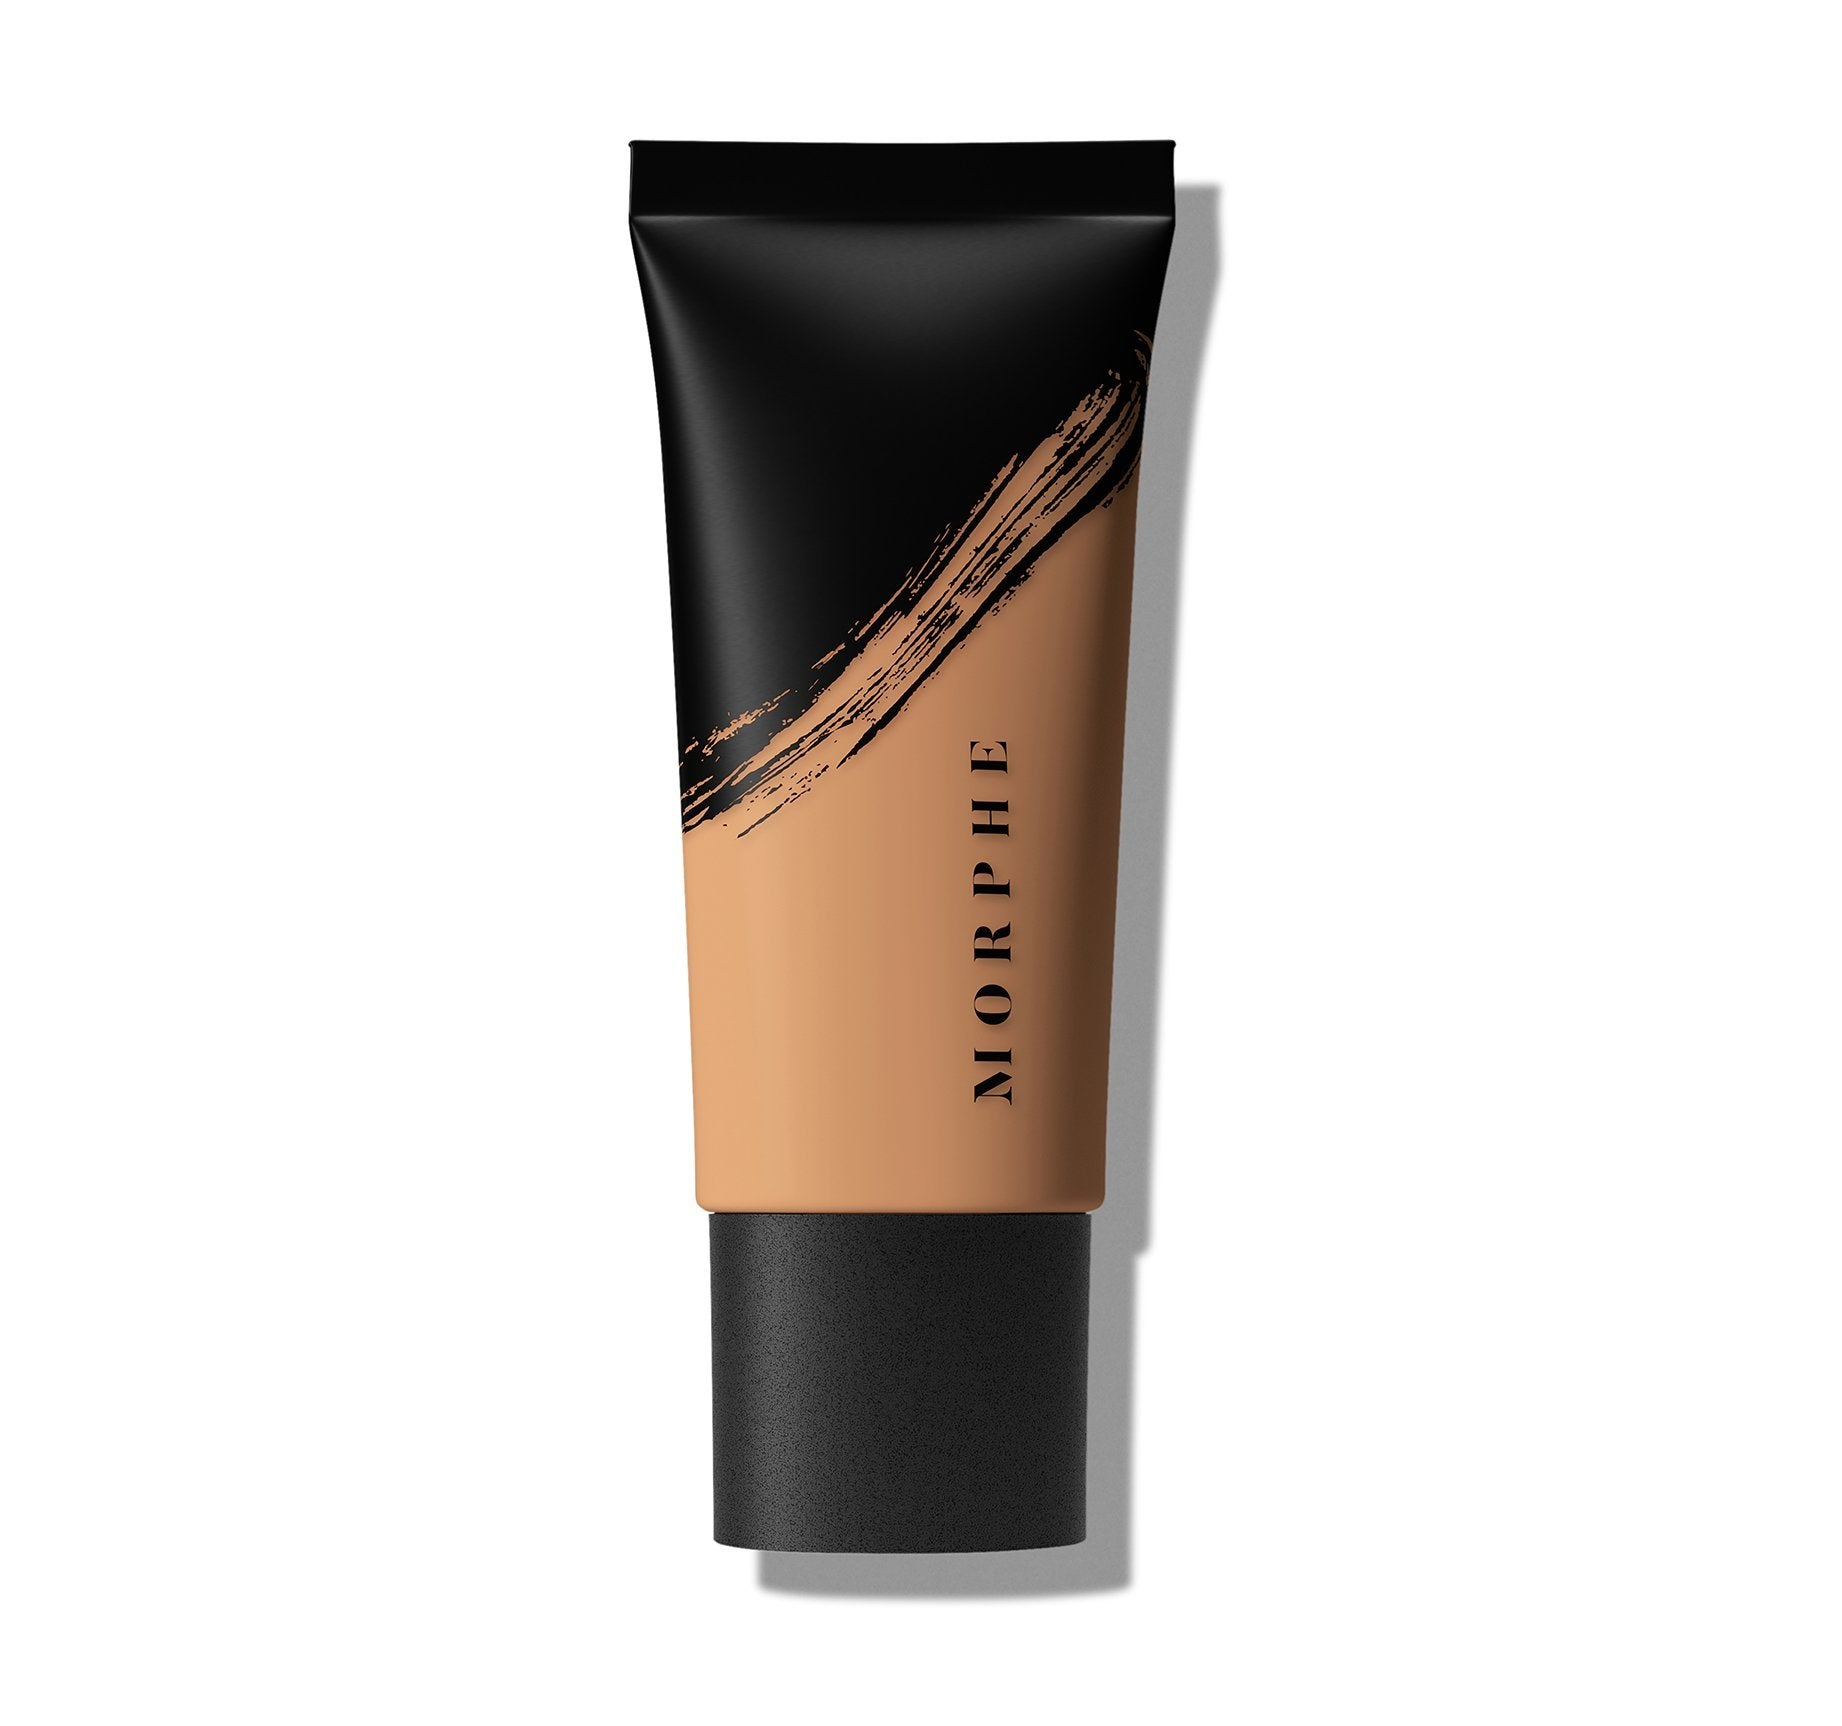 FLUIDITY FULL-COVERAGE FOUNDATION - F2.69, view larger image